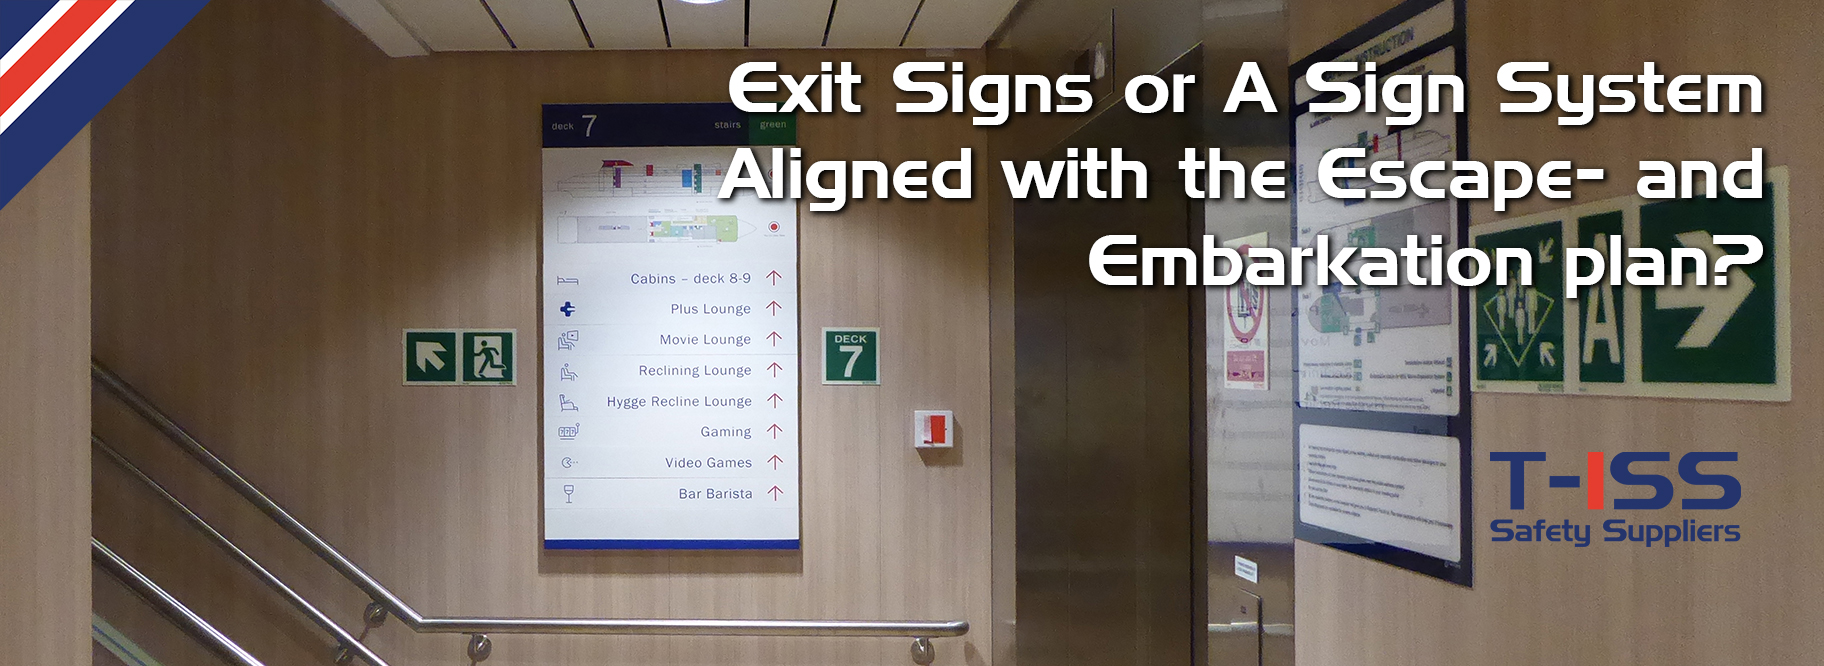 A Sign System Aligned with the Escape- and Embarkation plan by T-ISS Safety Suppliers